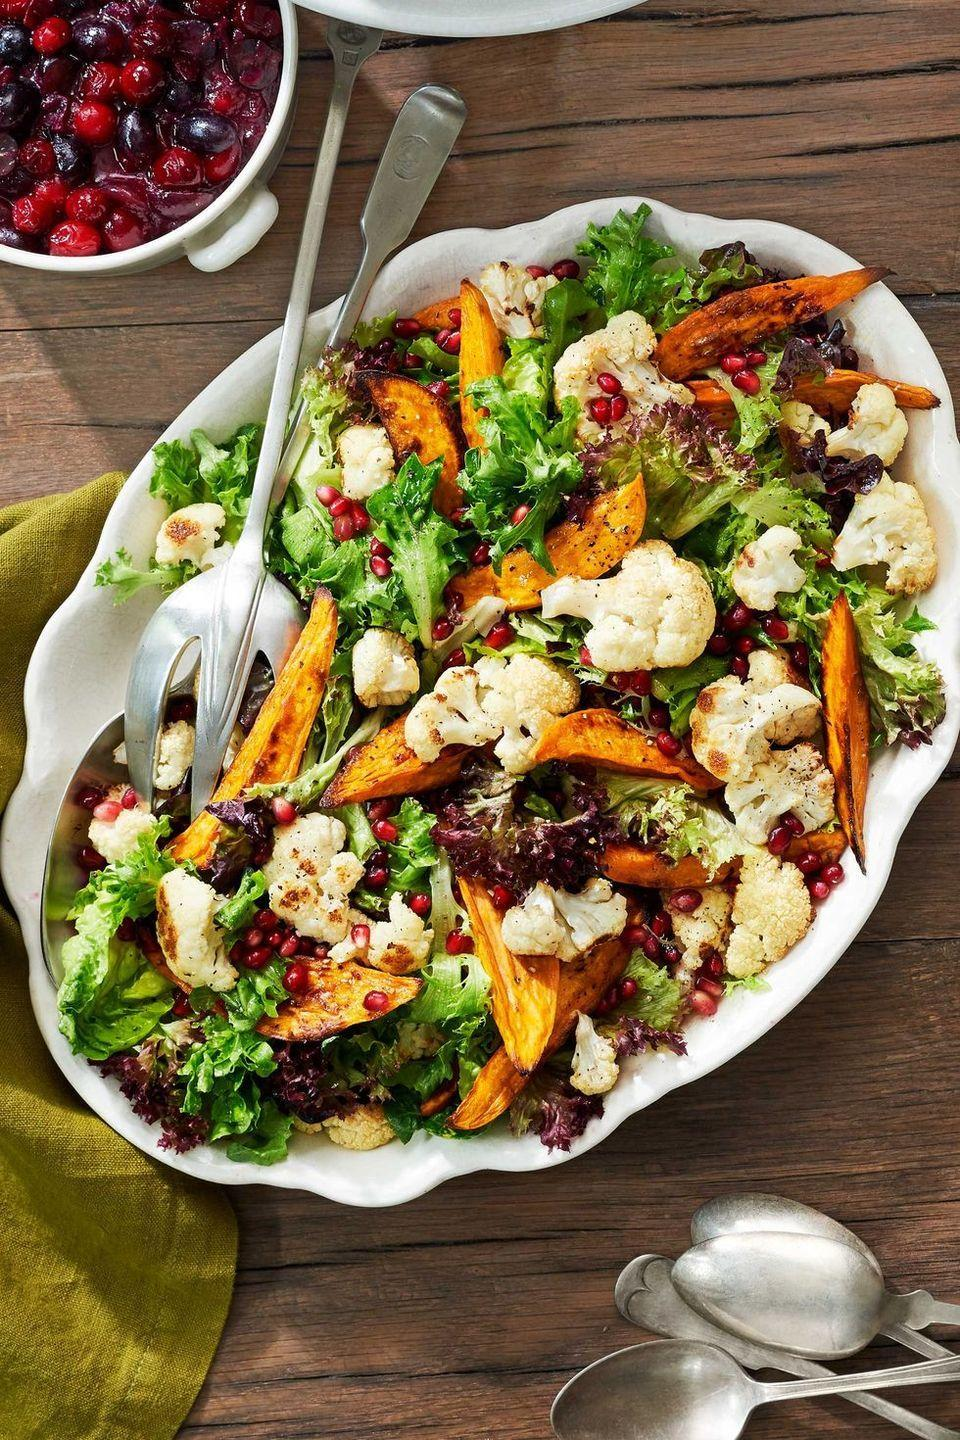 "<p>Who says salads have to be boring? Amp up your greens with warm, roasted vegetables and pomegranate seeds. </p><p><strong><a href=""https://www.countryliving.com/food-drinks/recipes/a40029/sweet-potato-and-cauliflower-salad-recipe/"" rel=""nofollow noopener"" target=""_blank"" data-ylk=""slk:Get the recipe"" class=""link rapid-noclick-resp"">Get the recipe</a>.</strong></p><p><strong><a class=""link rapid-noclick-resp"" href=""https://www.amazon.com/Pioneer-Woman-Transparent-Platter-Off-white/dp/B01EHDHE0O/?tag=syn-yahoo-20&ascsubtag=%5Bartid%7C10050.g.34470406%5Bsrc%7Cyahoo-us"" rel=""nofollow noopener"" target=""_blank"" data-ylk=""slk:SHOP SERVING DISHES"">SHOP SERVING DISHES</a><br></strong></p>"